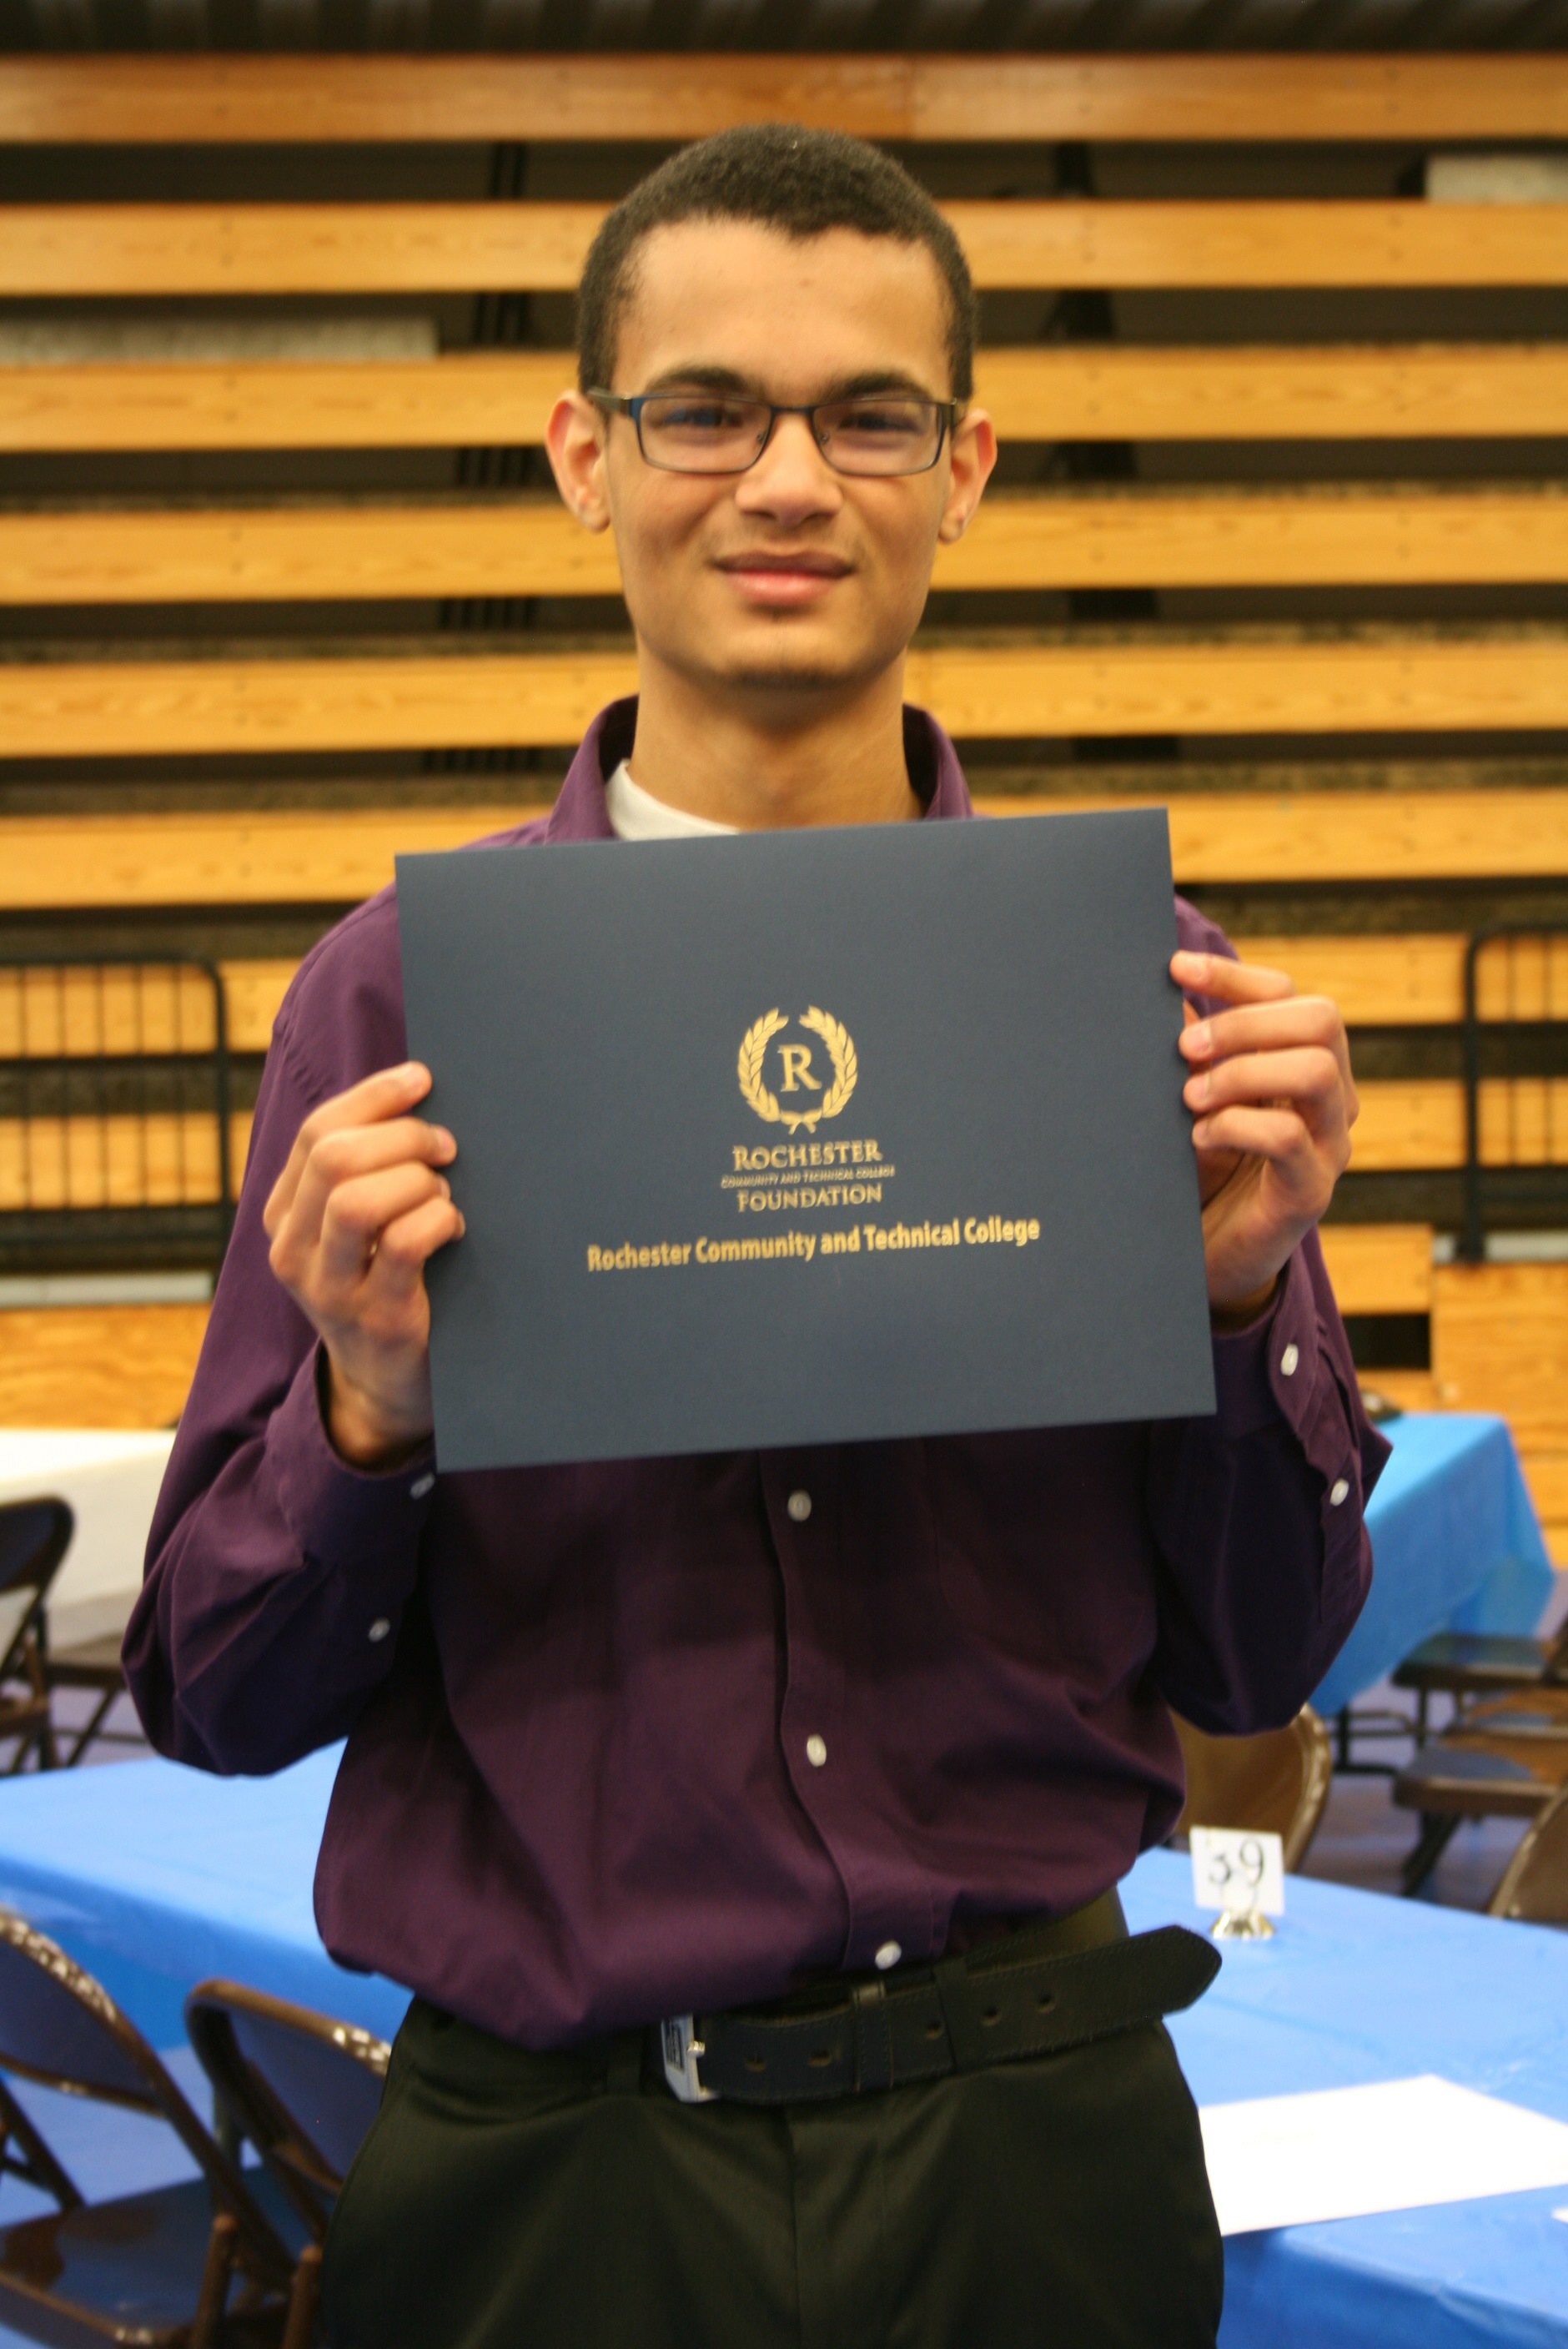 Image of Student with Certificate